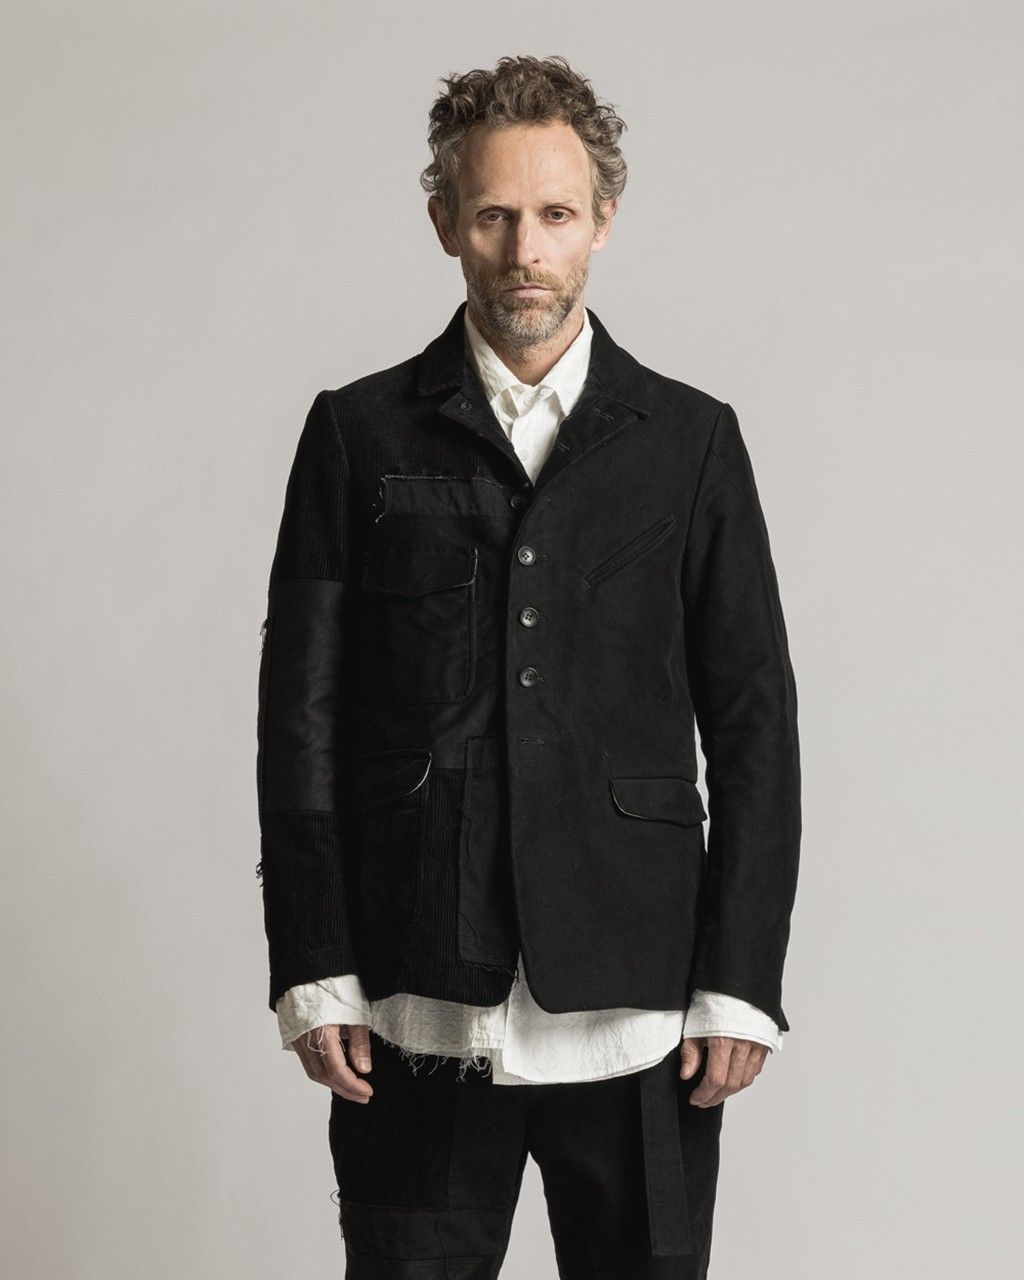 21AW DUE-Ⅲ-026-JAK Patched Hunting Jacket